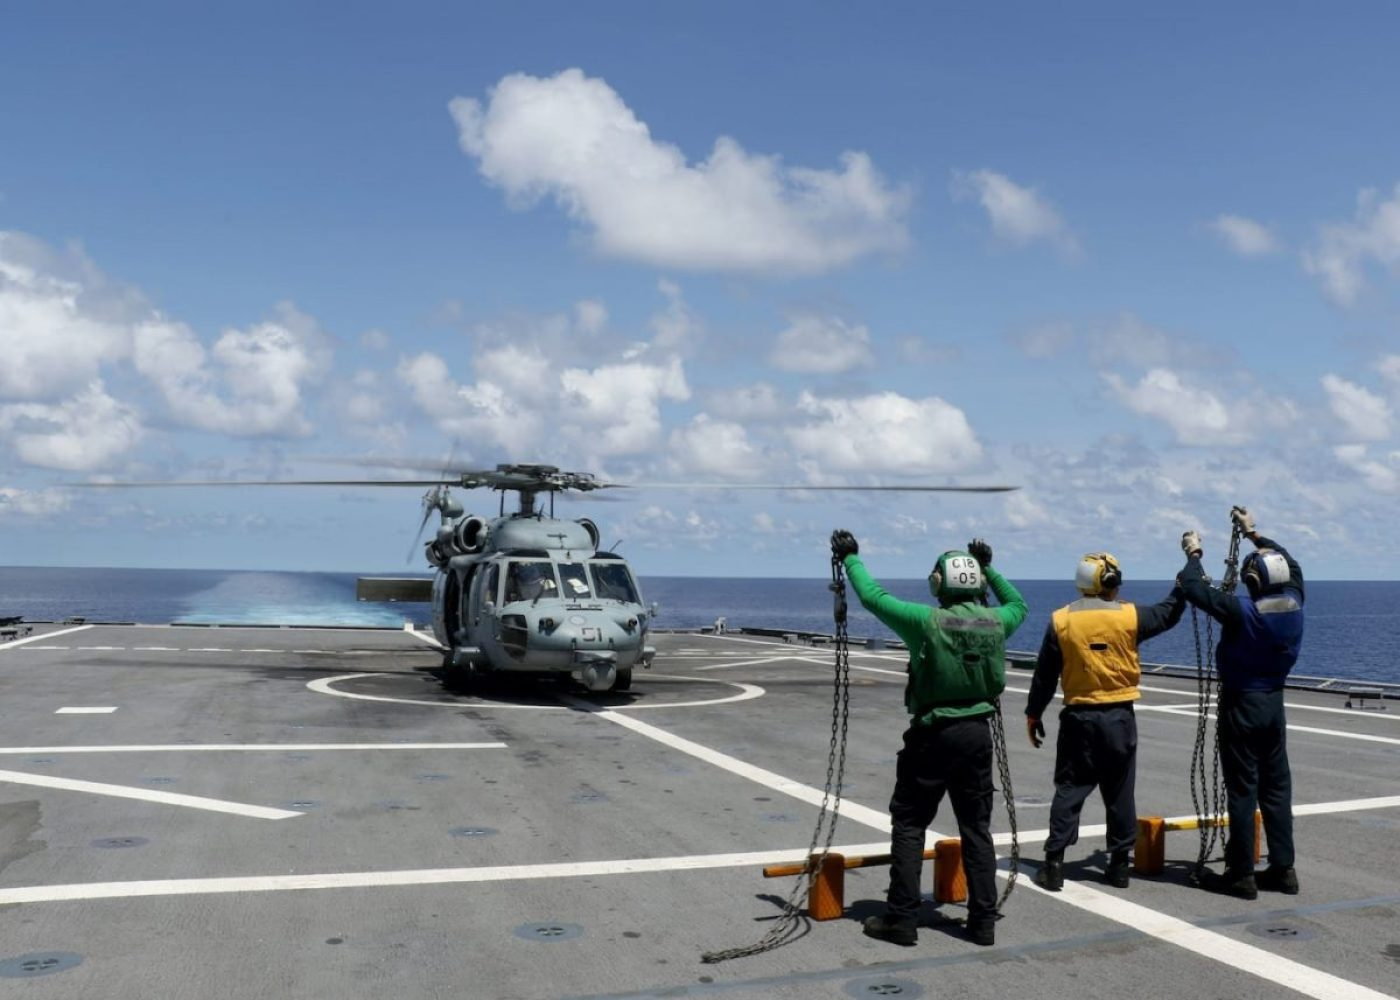 """Sailors assigned to the Independence-variant littoral combat ship USS Gabrielle Giffords (LCS 10) celebrate the successful landing an MH-60S Sea Hawk helicopter assigned to the """"Wildcards"""" of Helicopter Sea Combat Squadron (HSC) 23 following routine flight operations, July 2, 2020. (U.S. Navy photo by Lt. j.g. Nicholas Kossen)"""